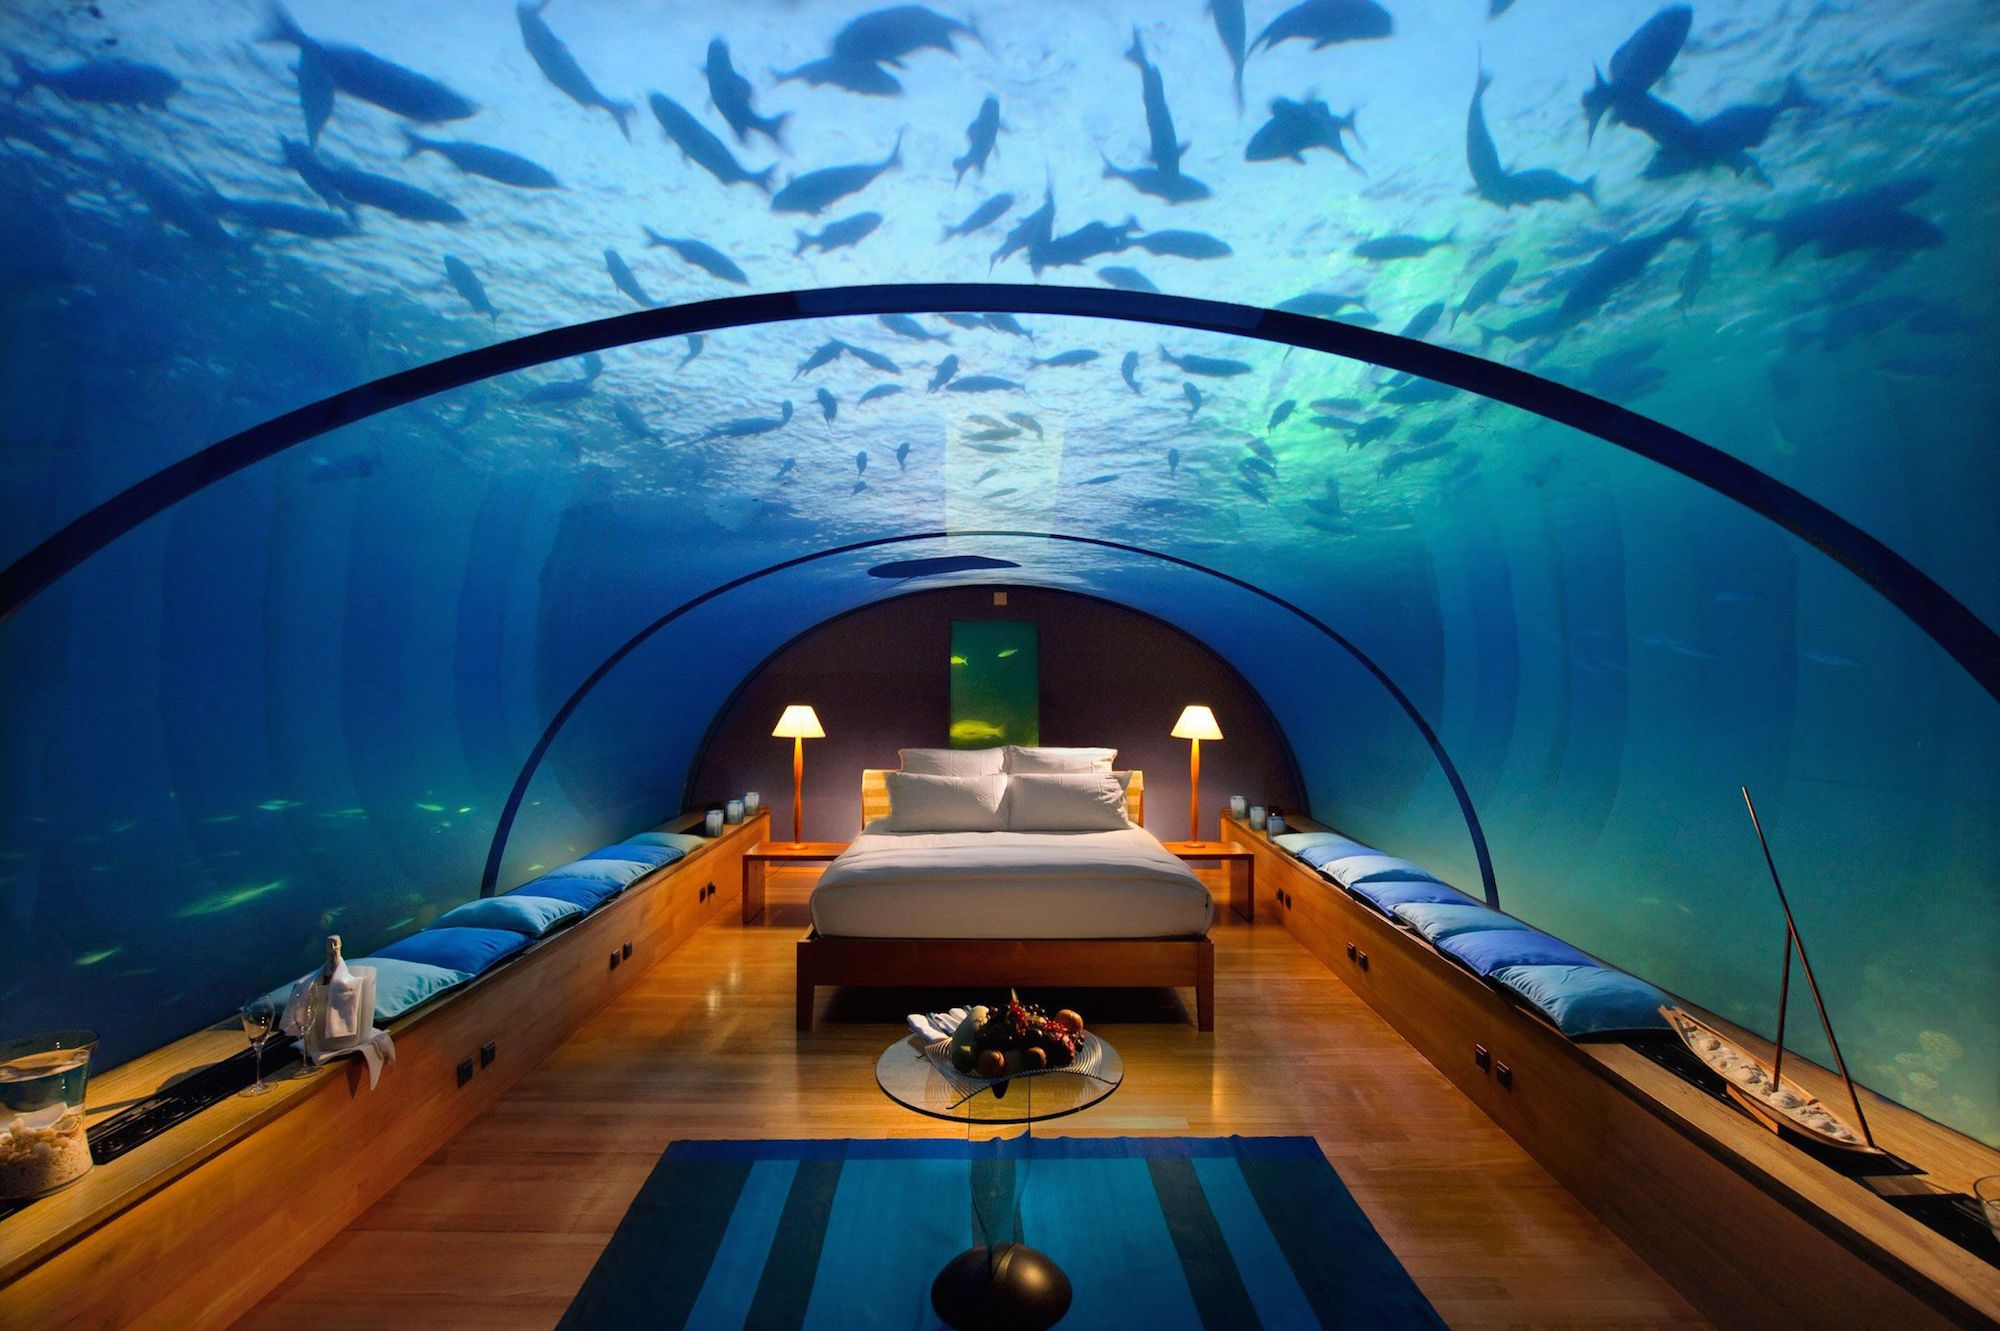 The 5* Star Conrad Rangali Island Maldives Resort